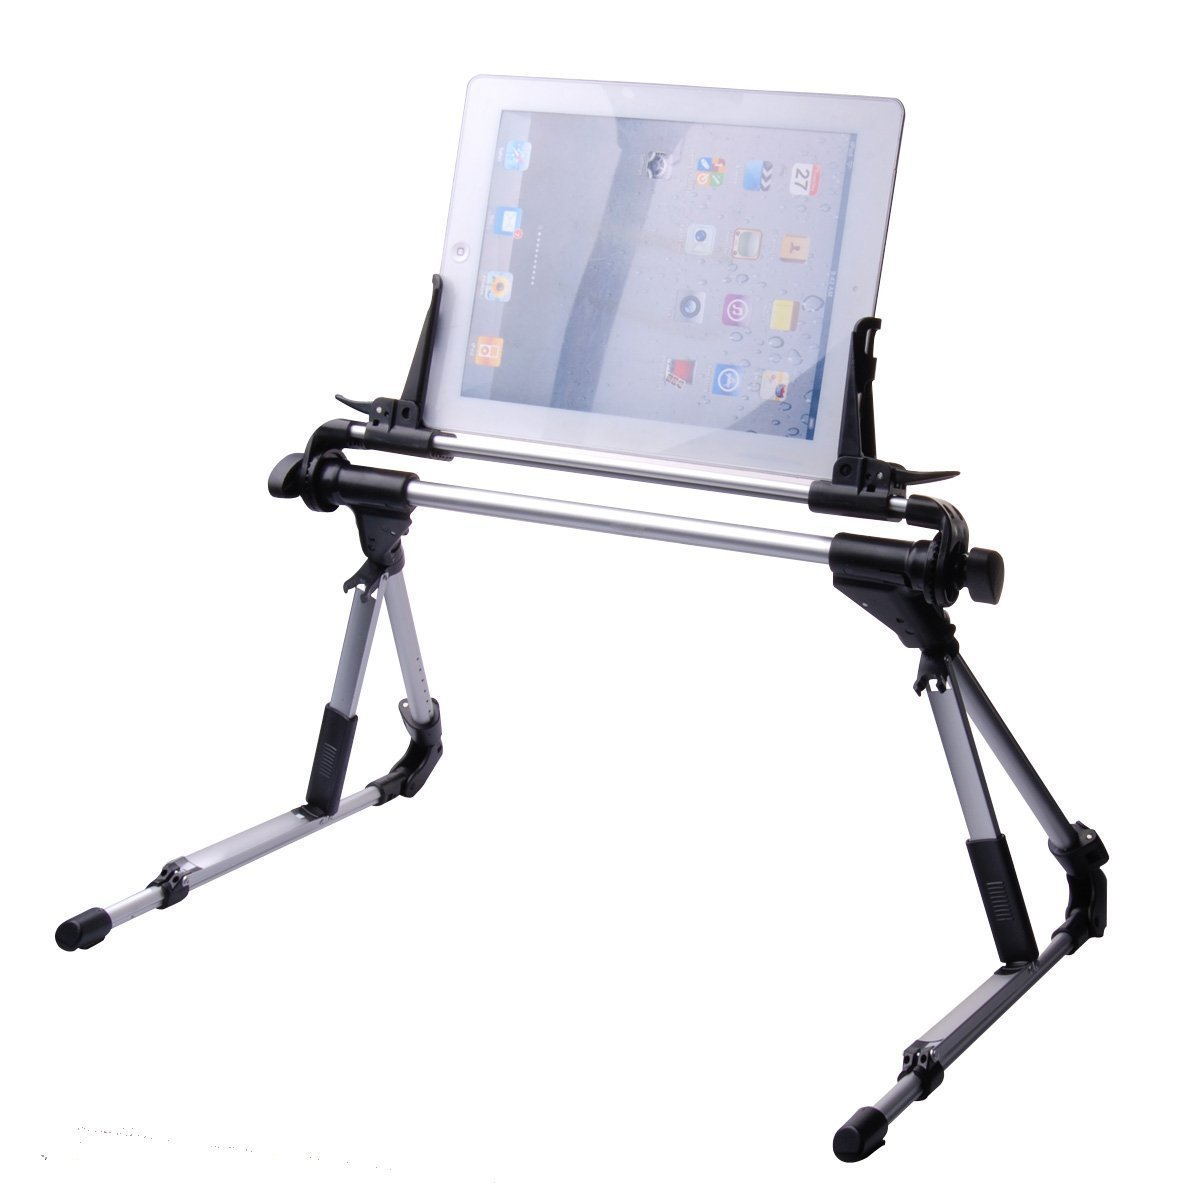 Amazon.com: Universal Tablet Bed Frame Holder Stand for iPad 1 2 3 4 ...